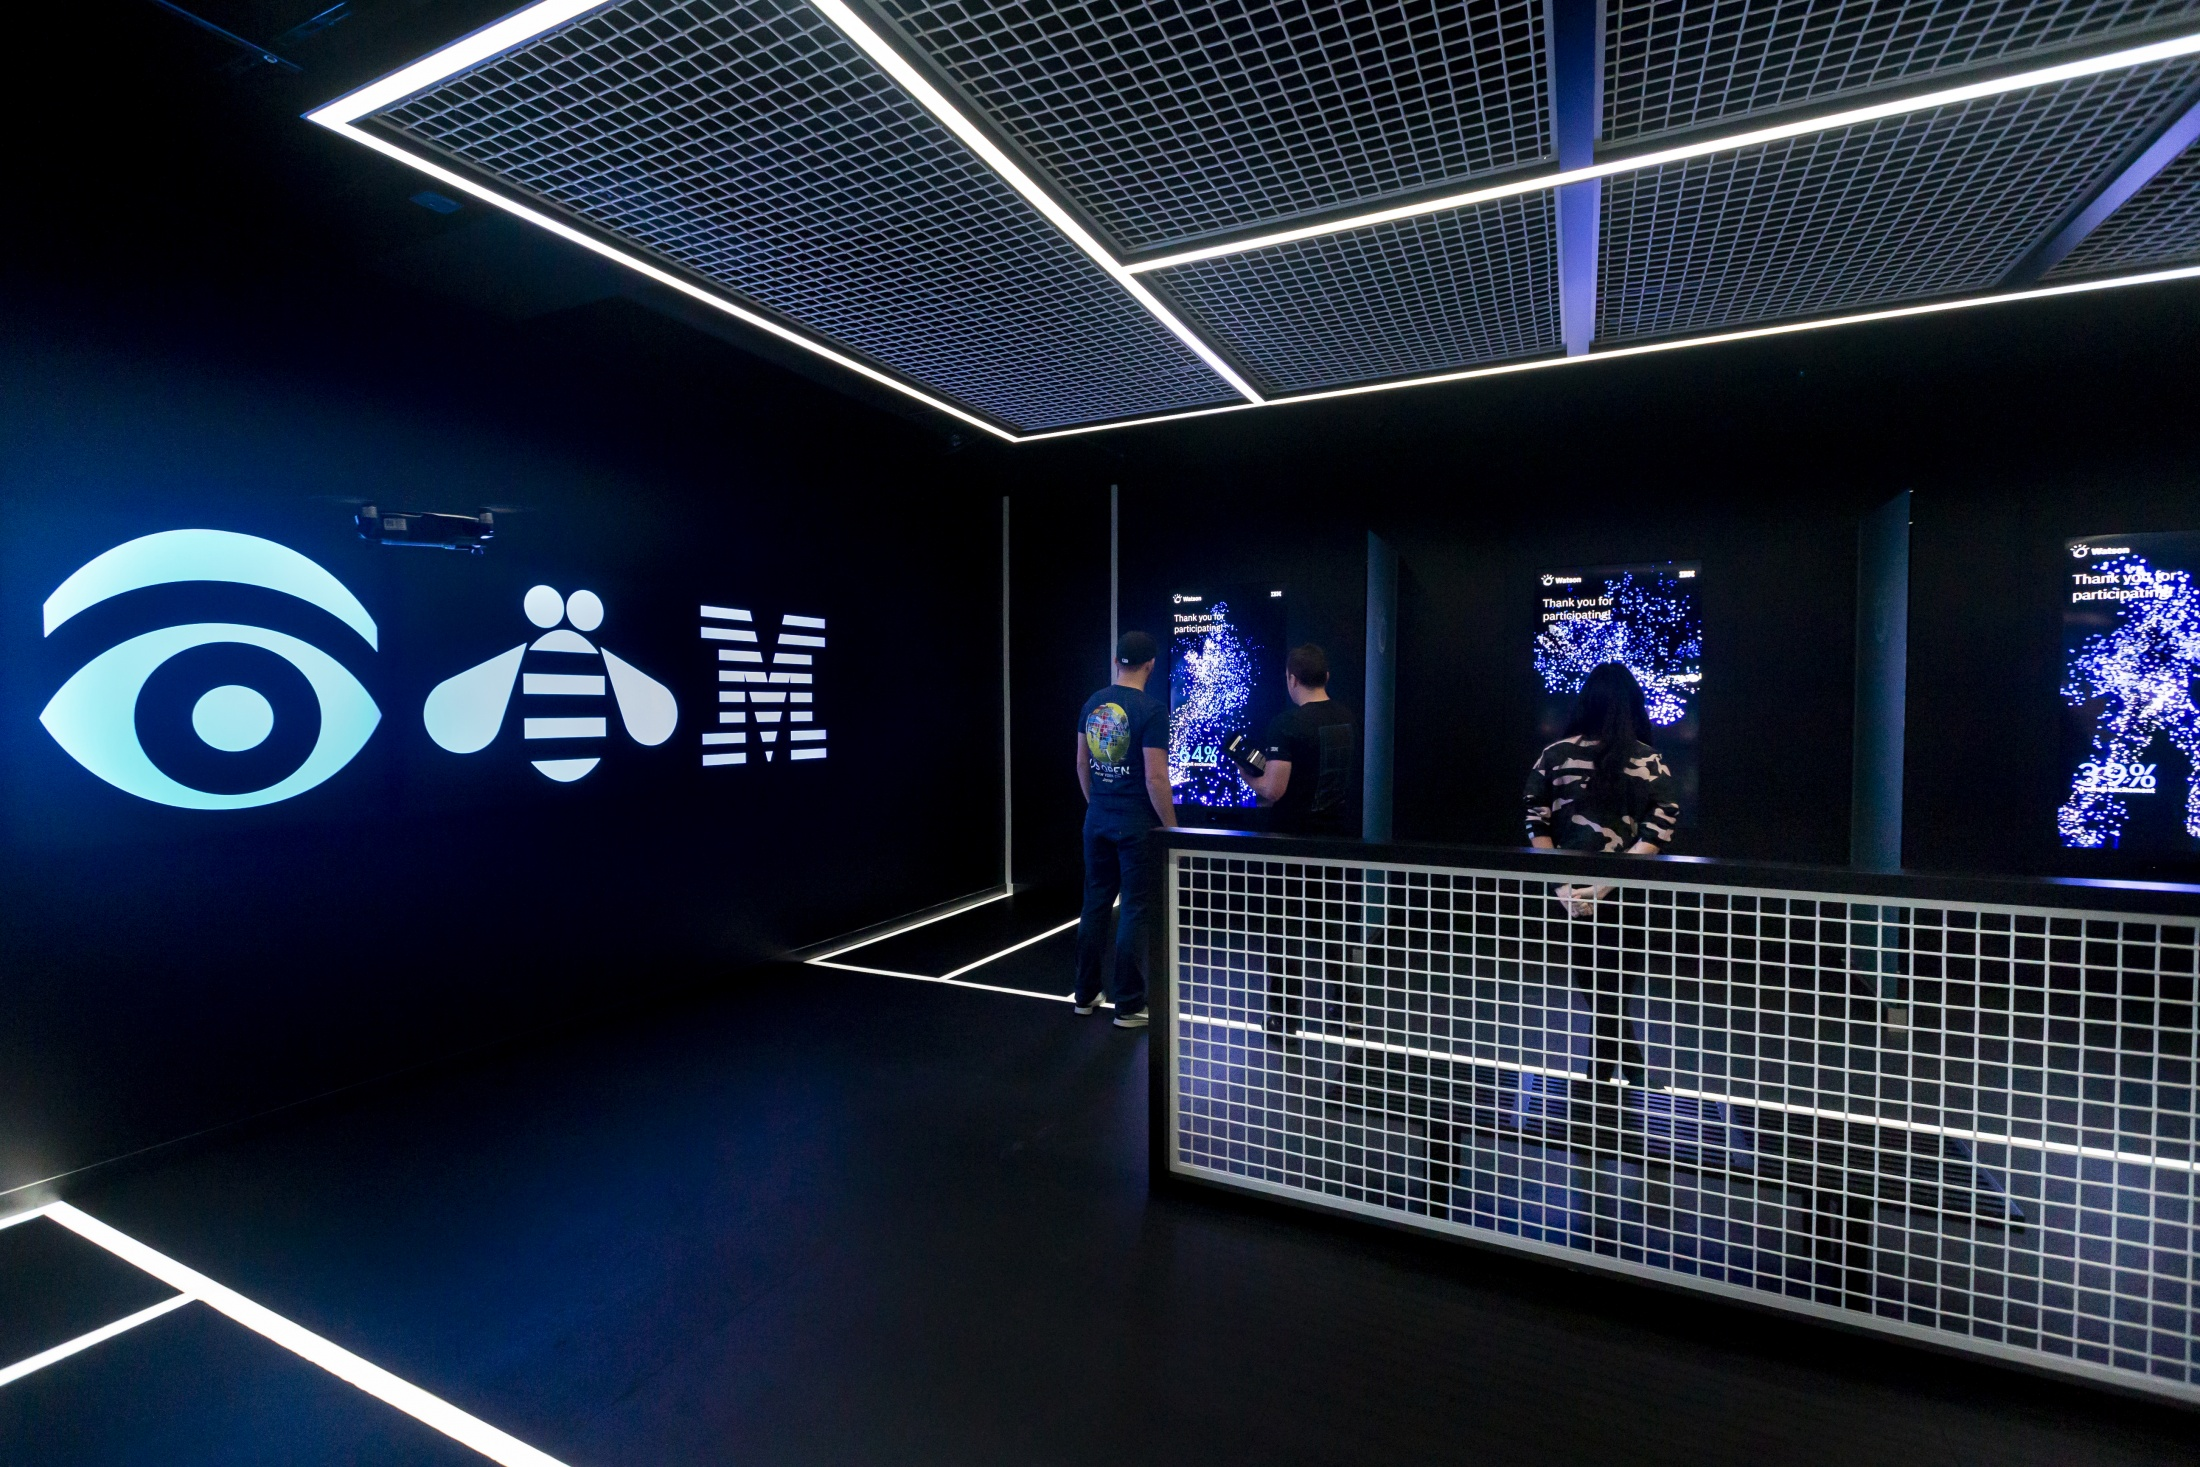 Thumbnail for Watson the Superfan: How AI is Changing the Game